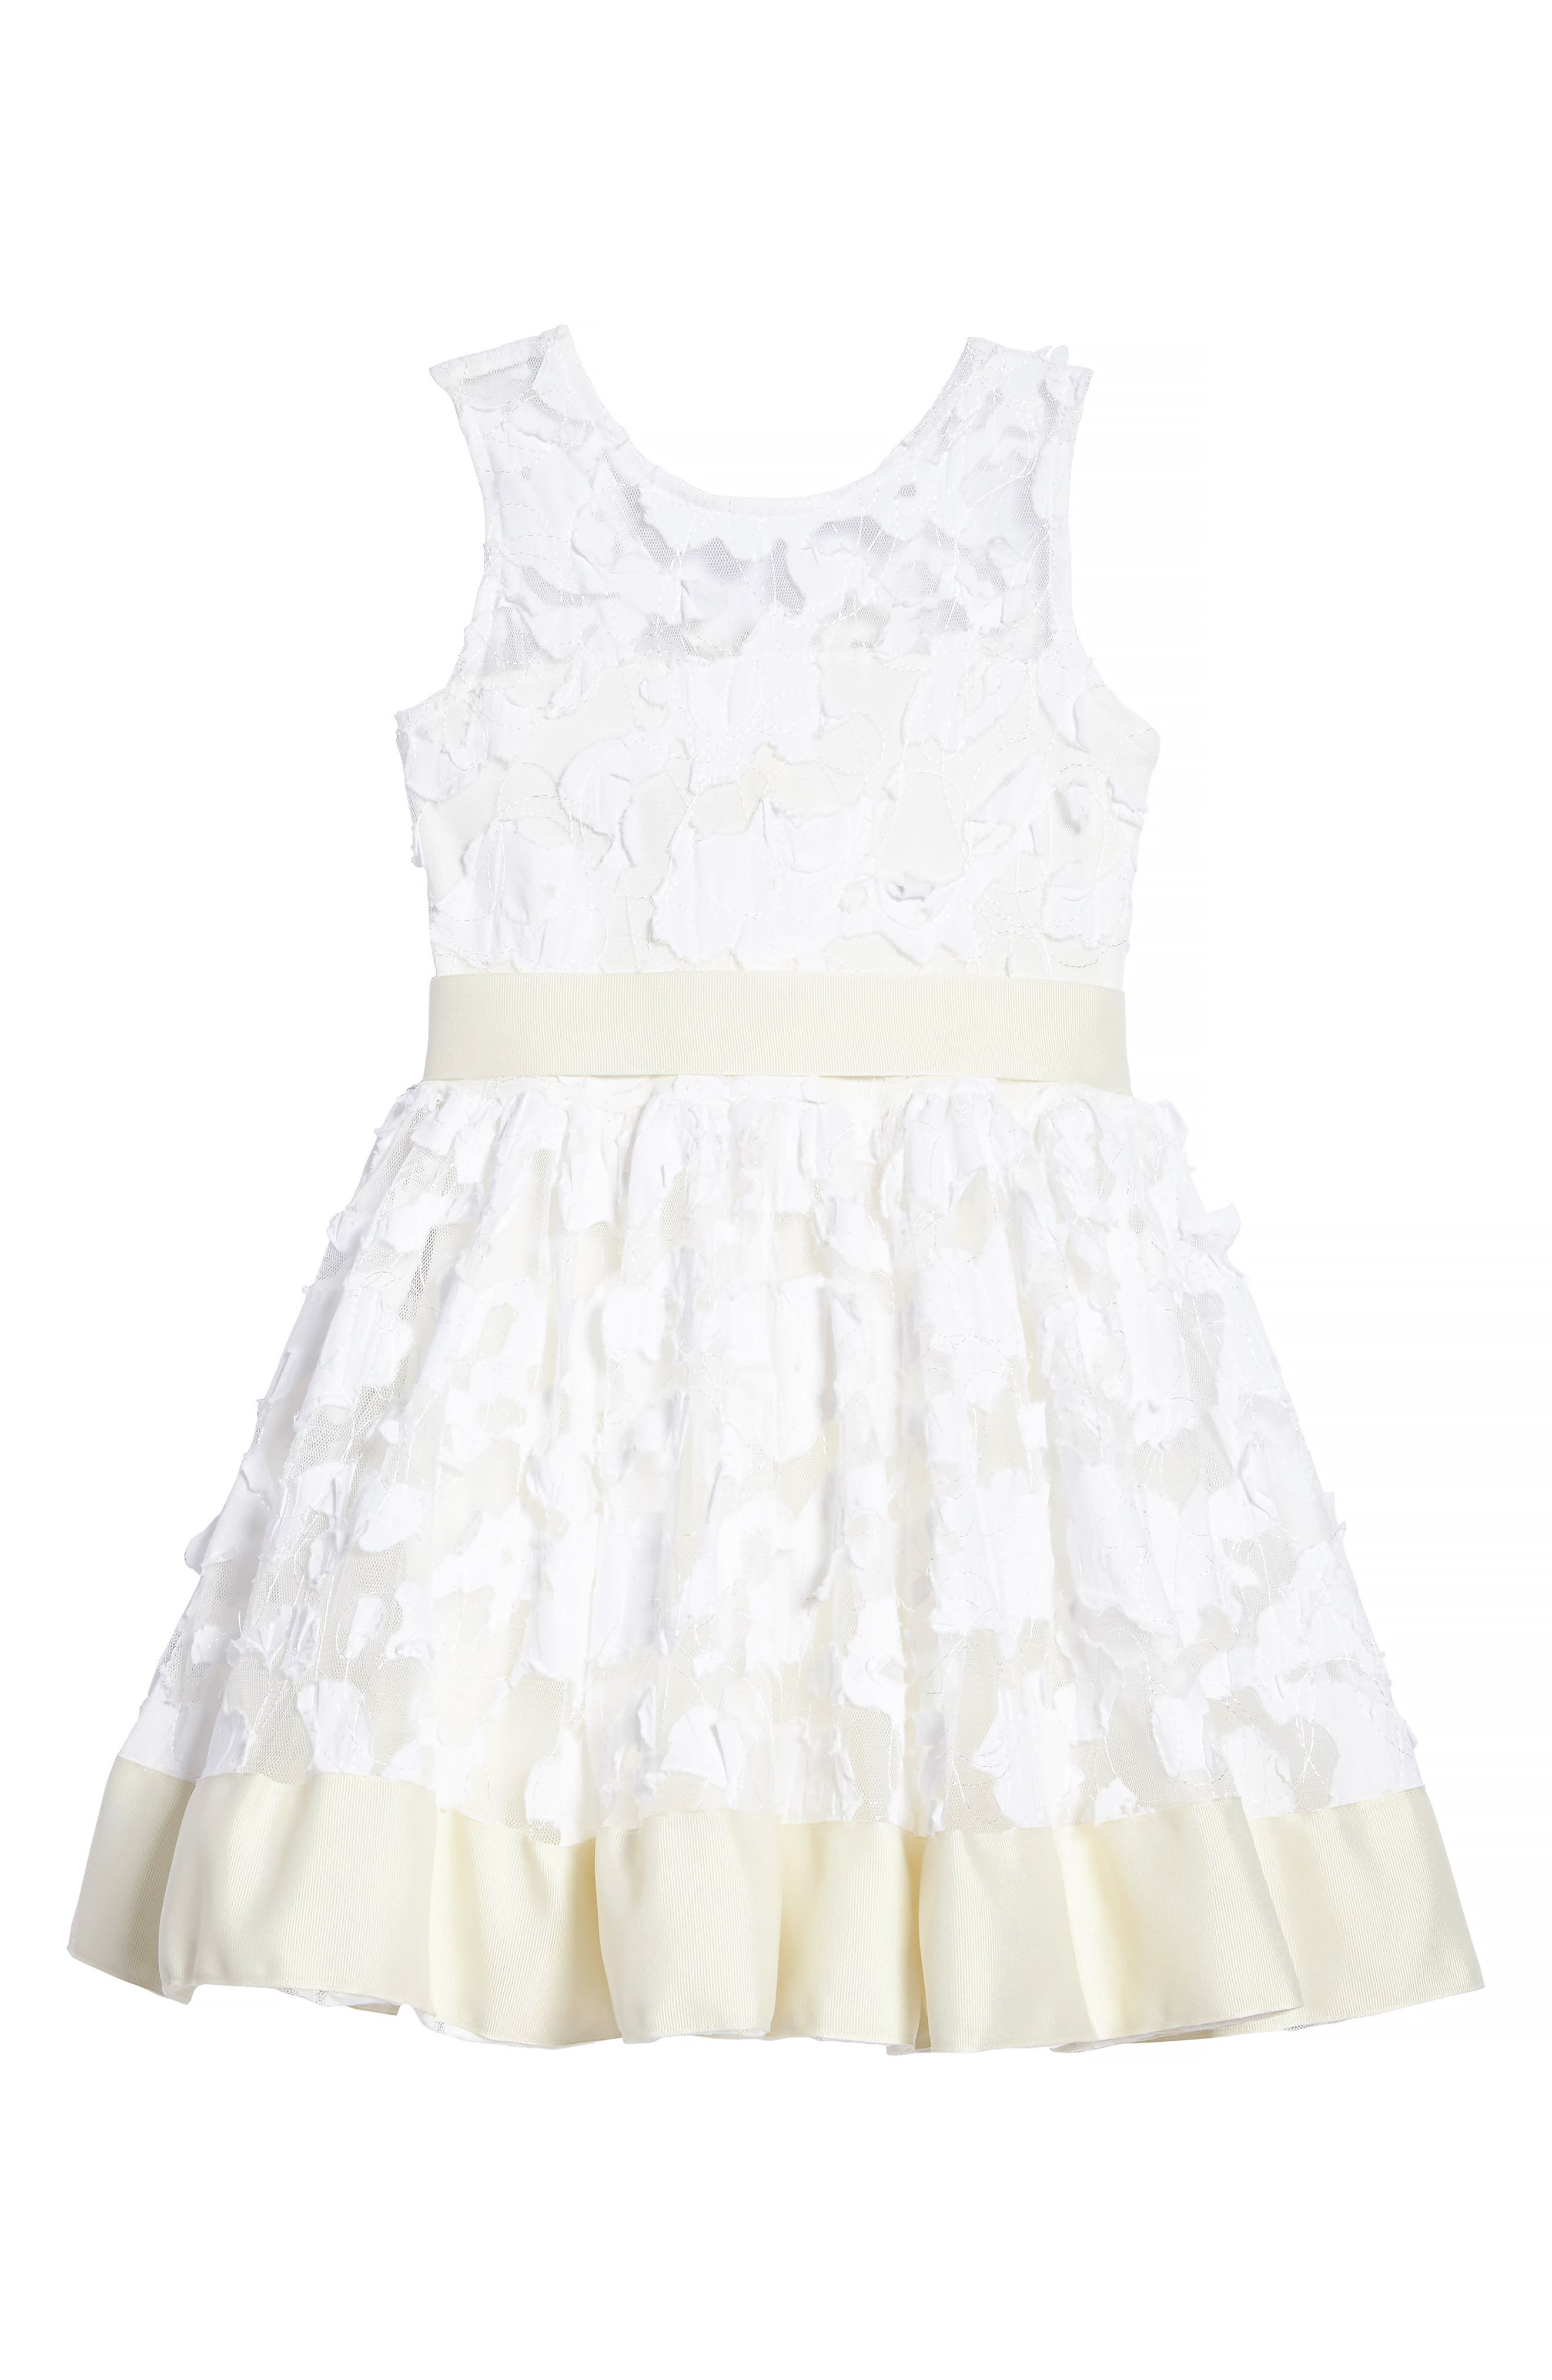 'Pretty in Ivory' Party Dress,                             Main thumbnail 1, color,                             900